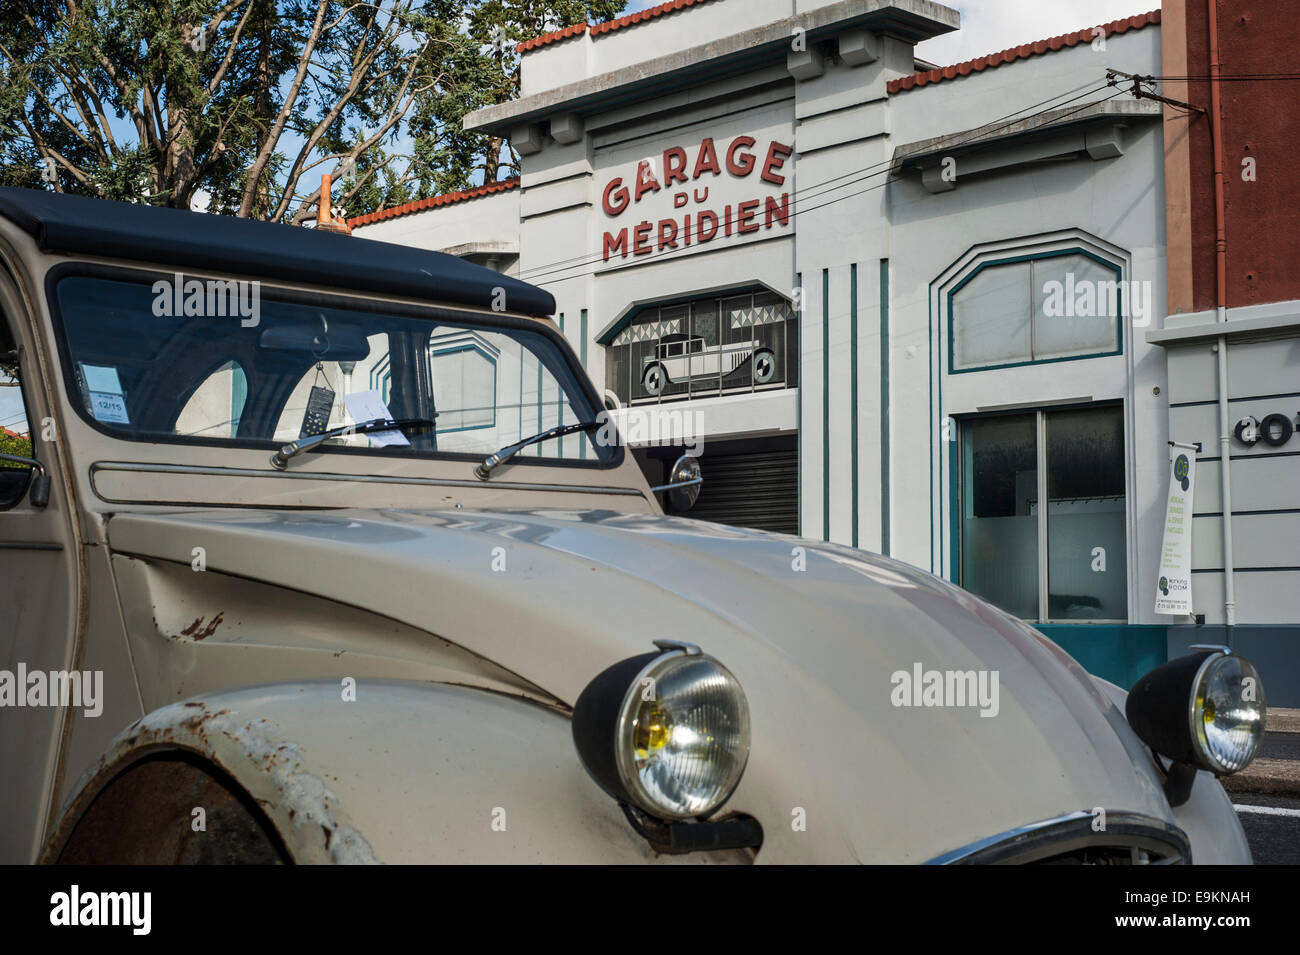 Garage town stockfotos garage town bilder seite 3 alamy - Garage citroen nimes route de montpellier ...